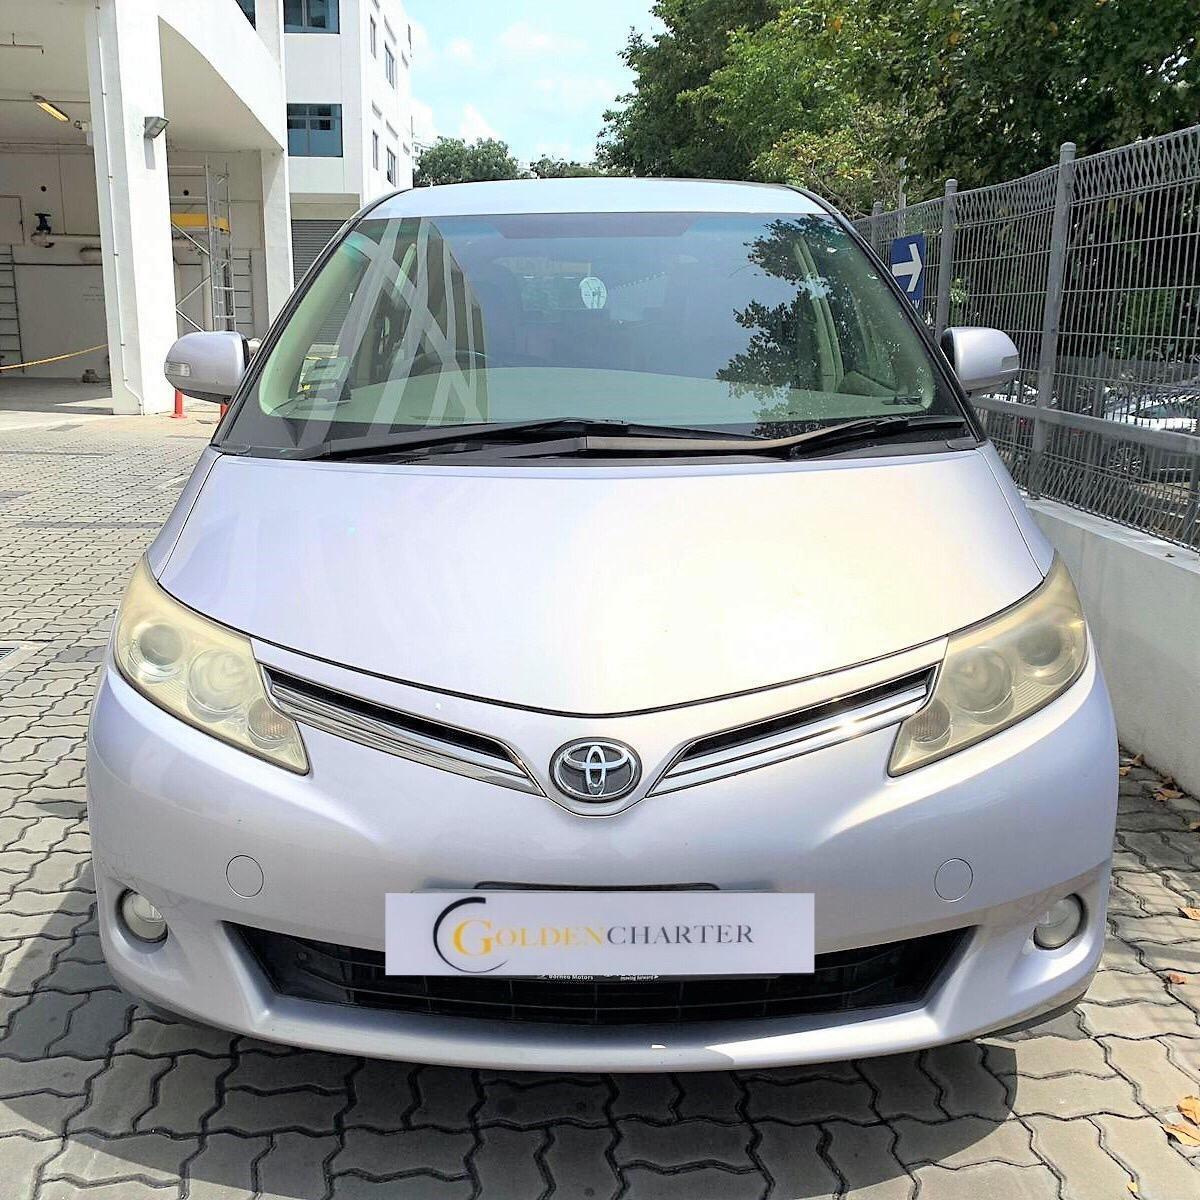 Toyota Previa CHEAPEST RENTAL for Grab GoJek or Personal use